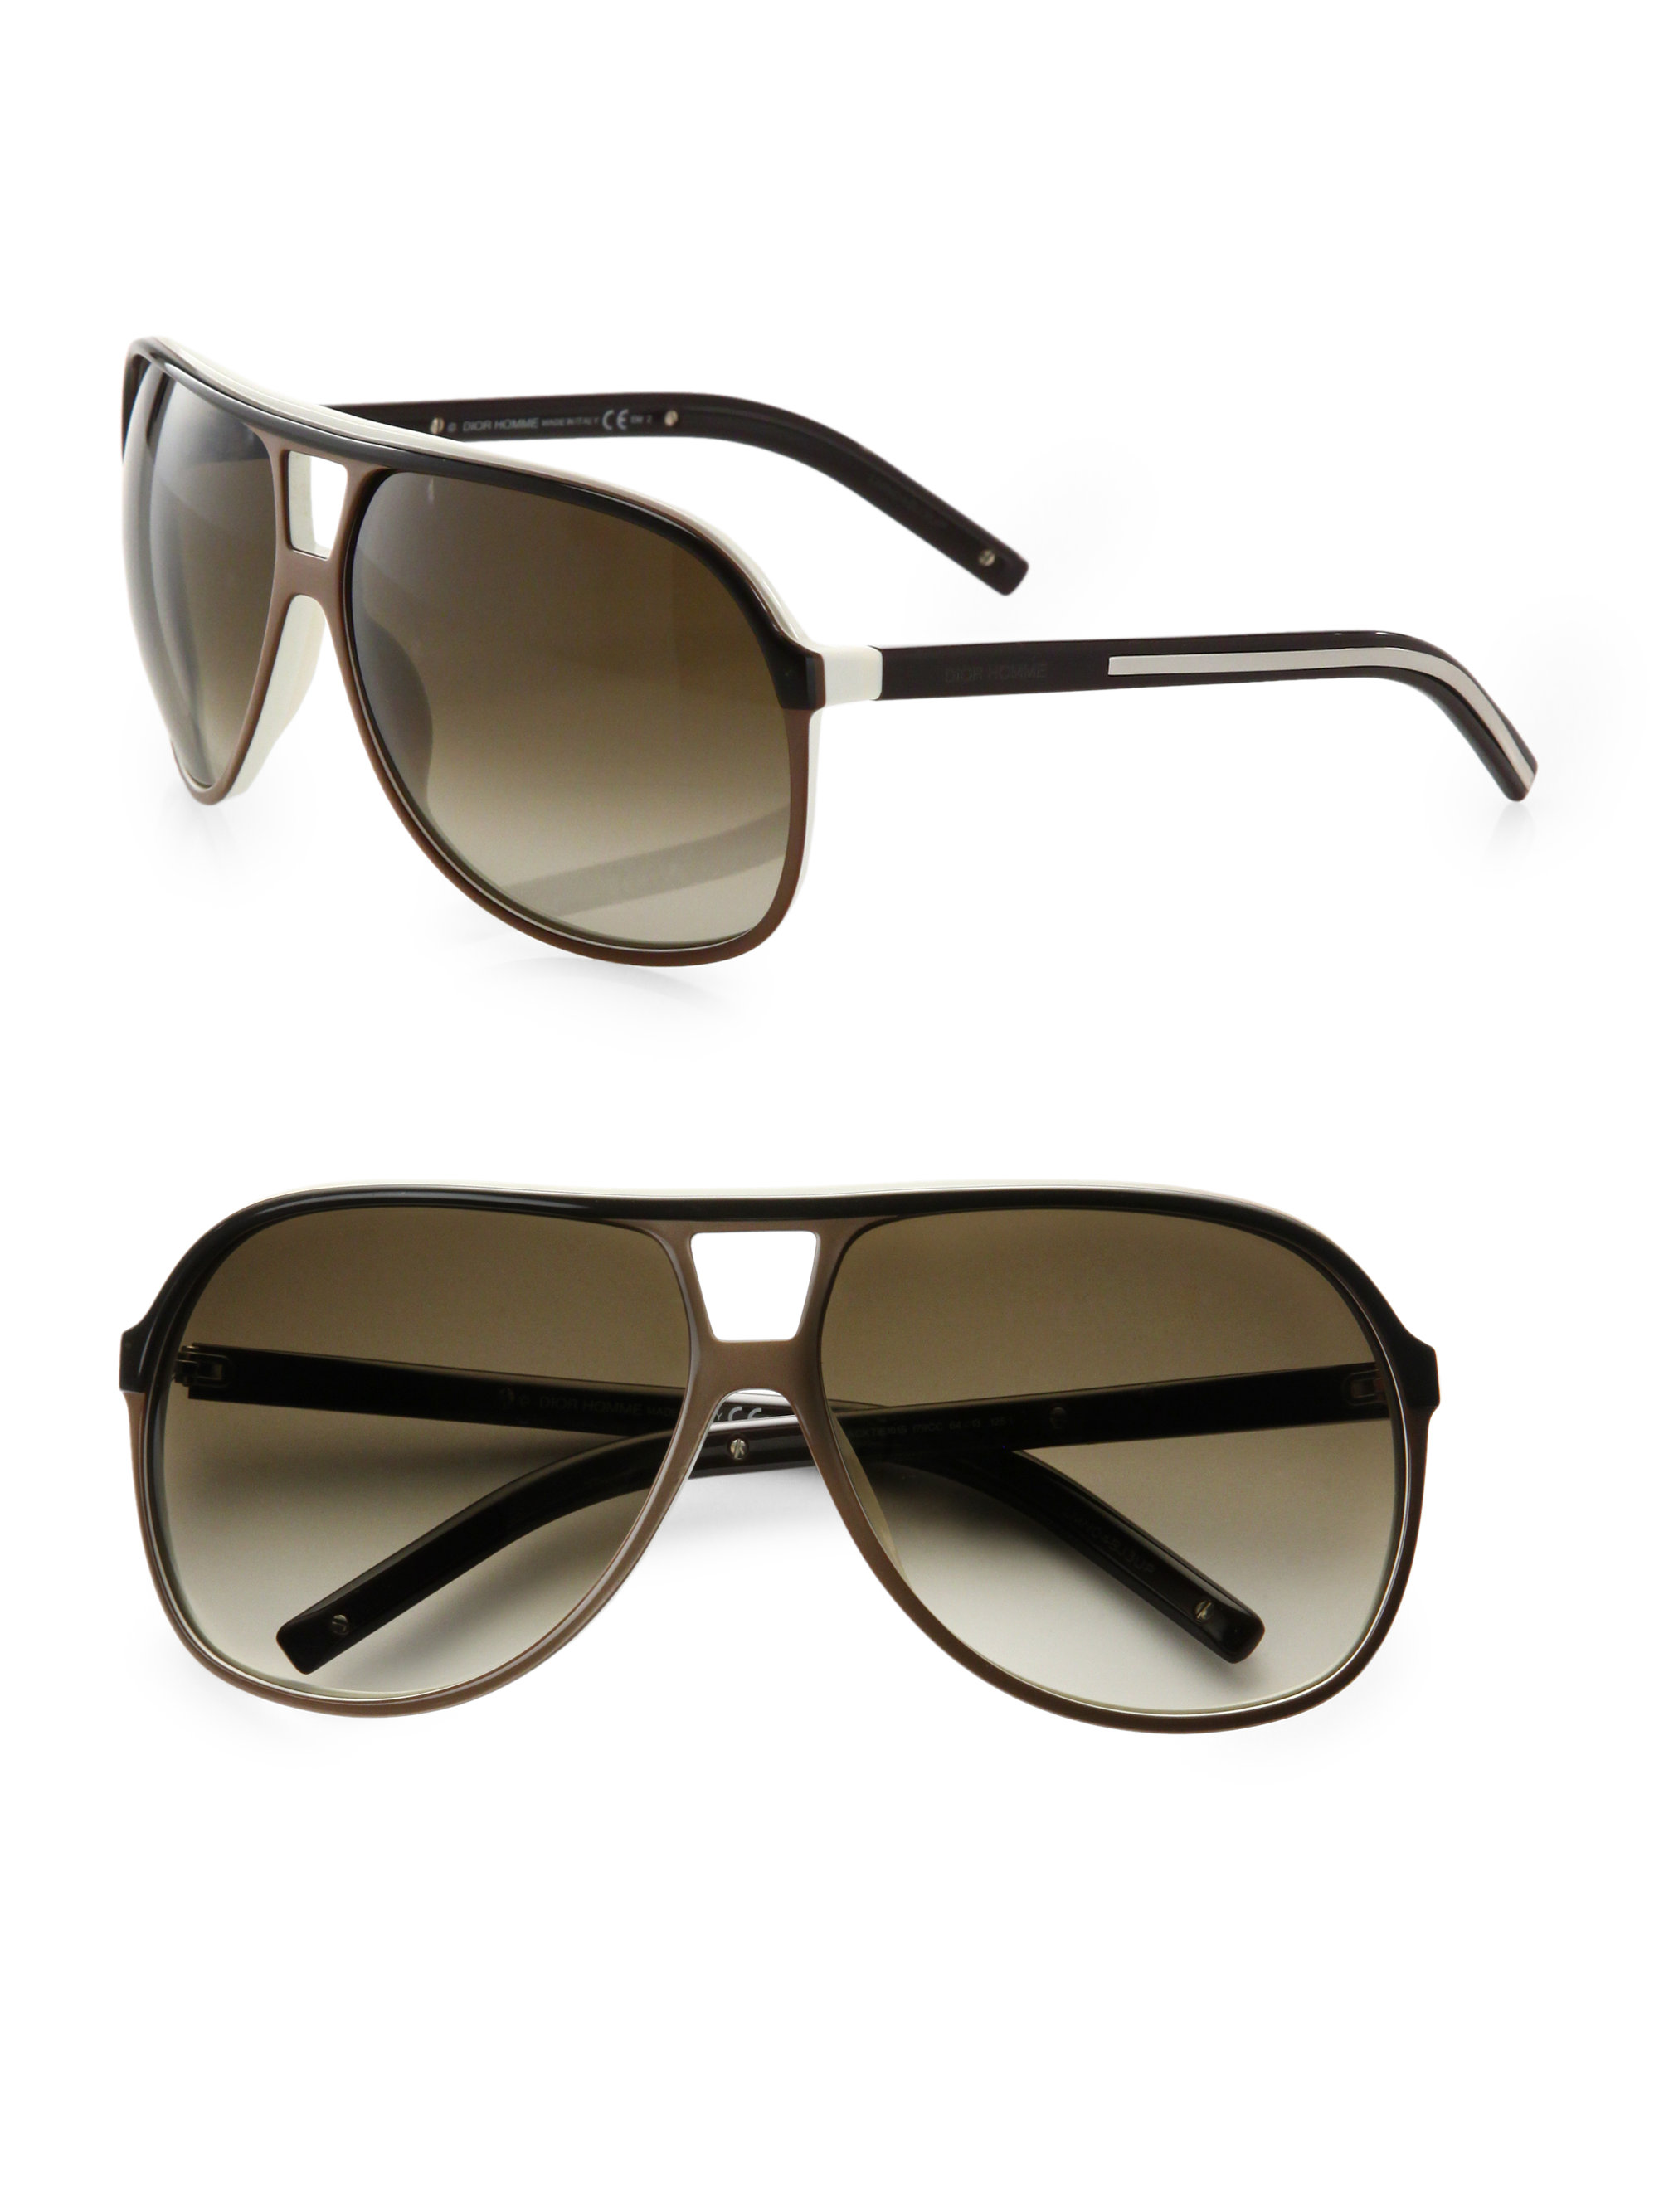 Oakley Half Jacket 2 0 Xl >> Dior homme Acetate Aviator Shield Sunglasses in Black for ...